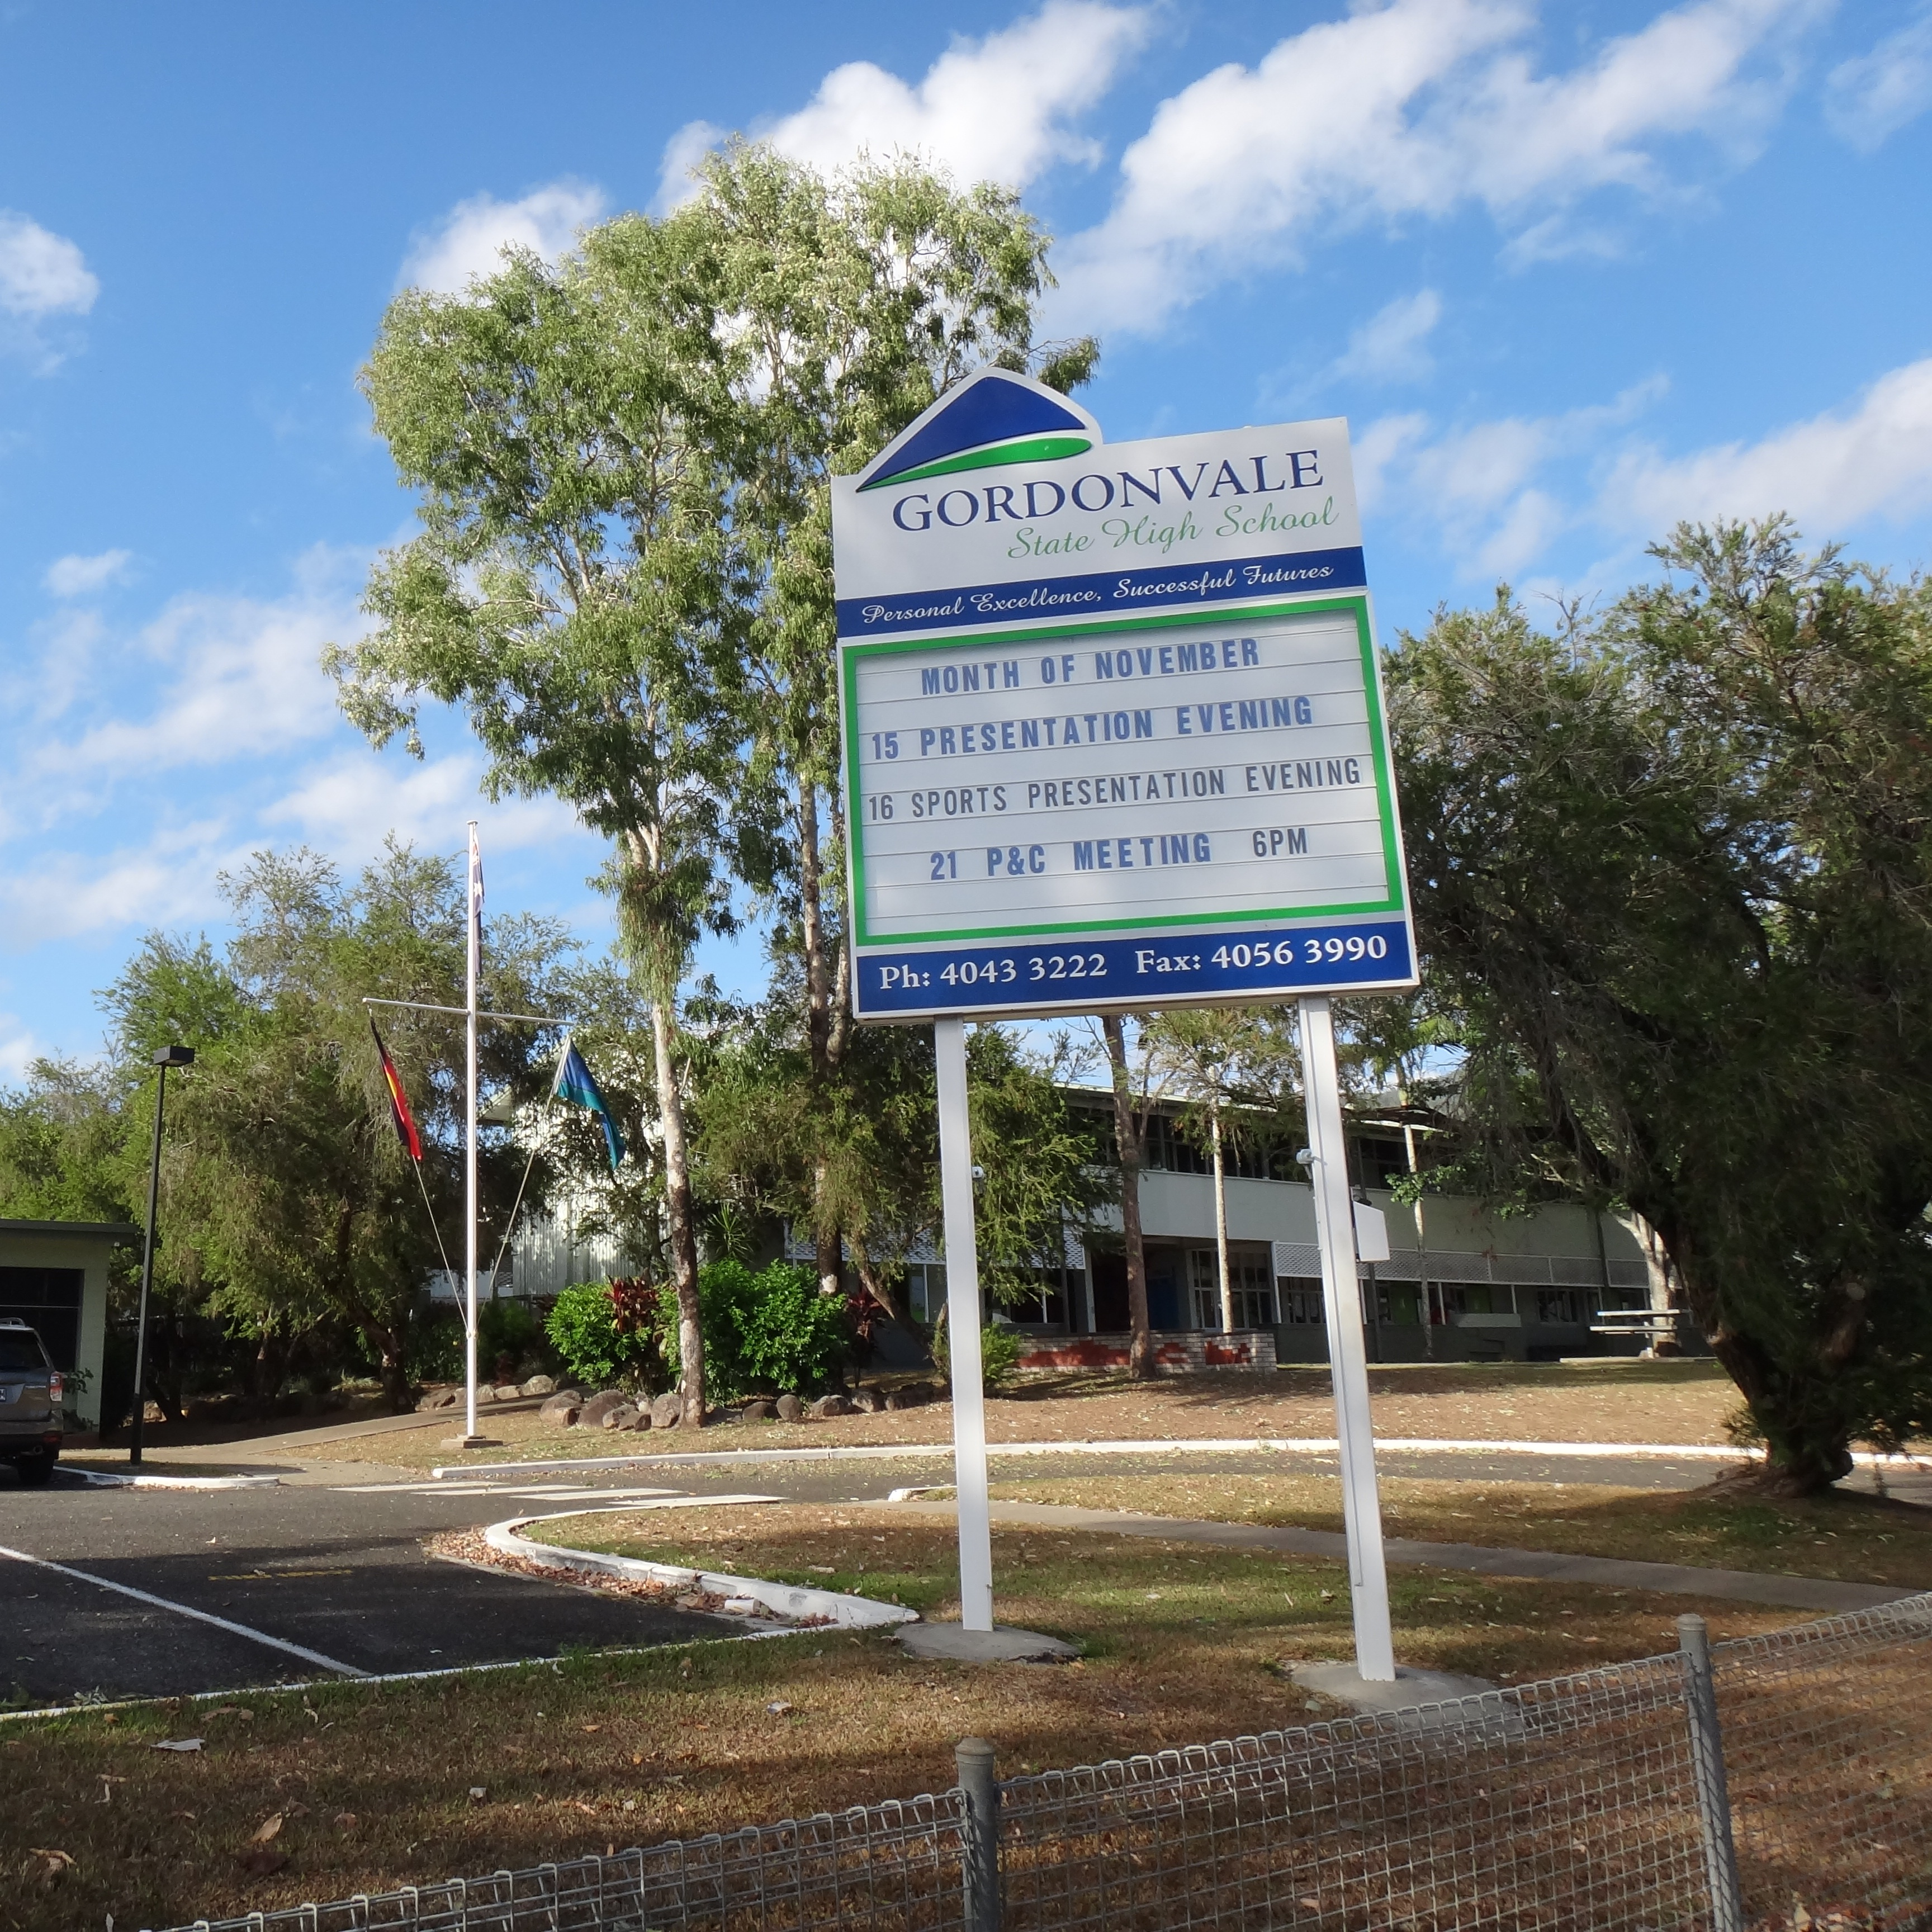 Photo of Gordonvale State High School